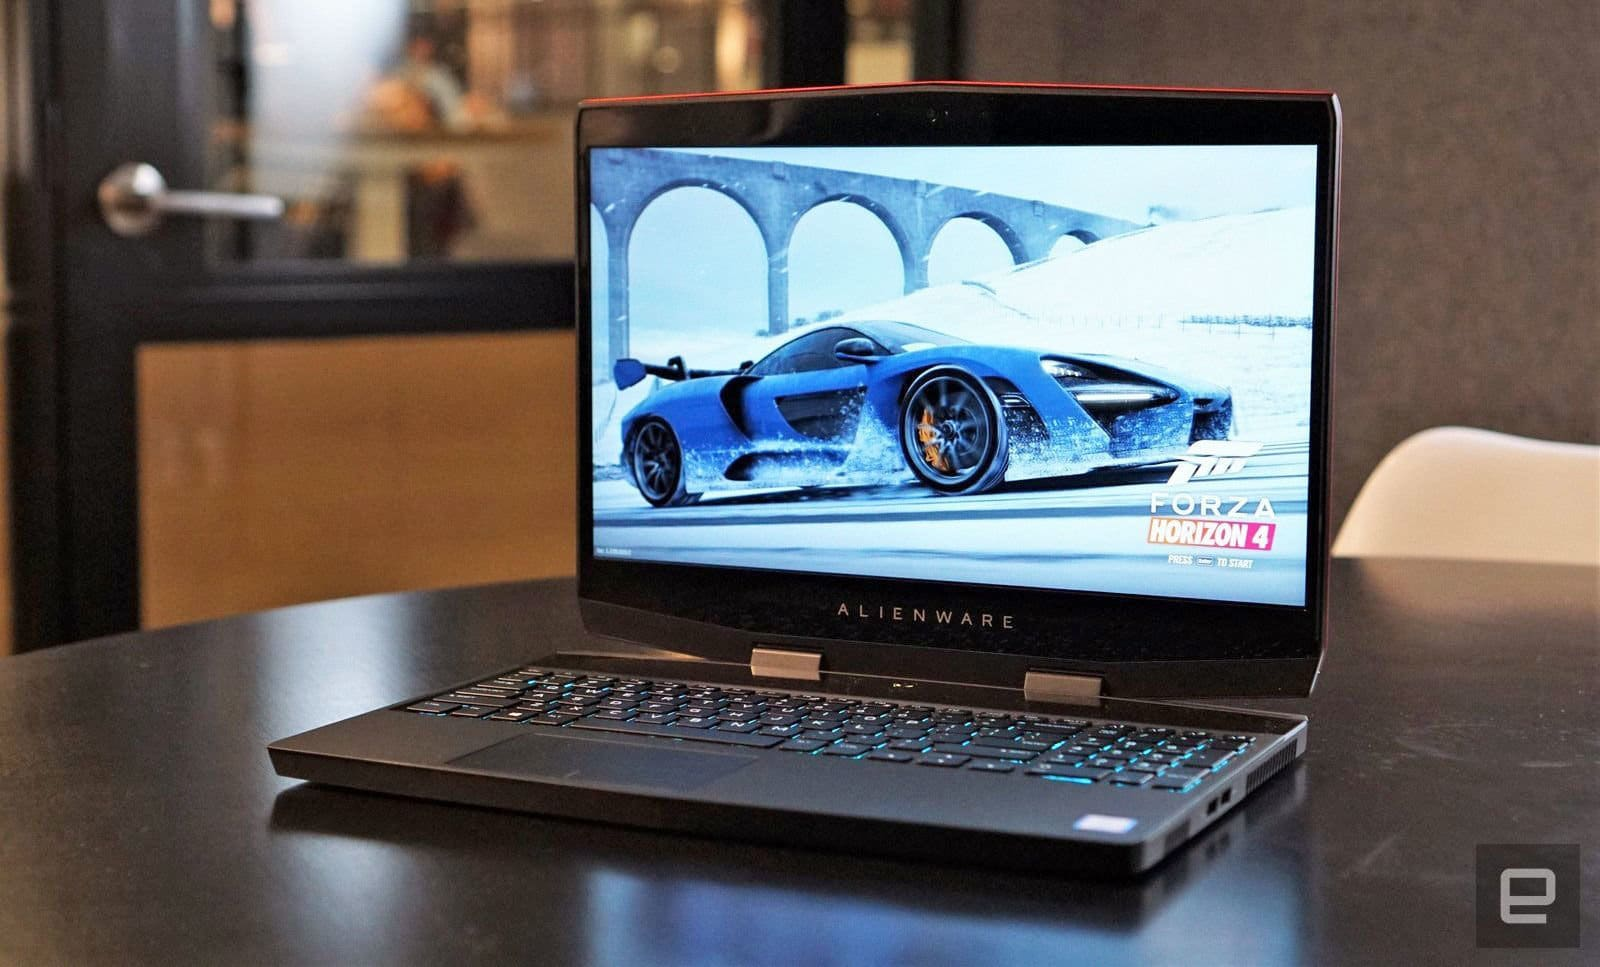 Alienware m15 laptop (2019)